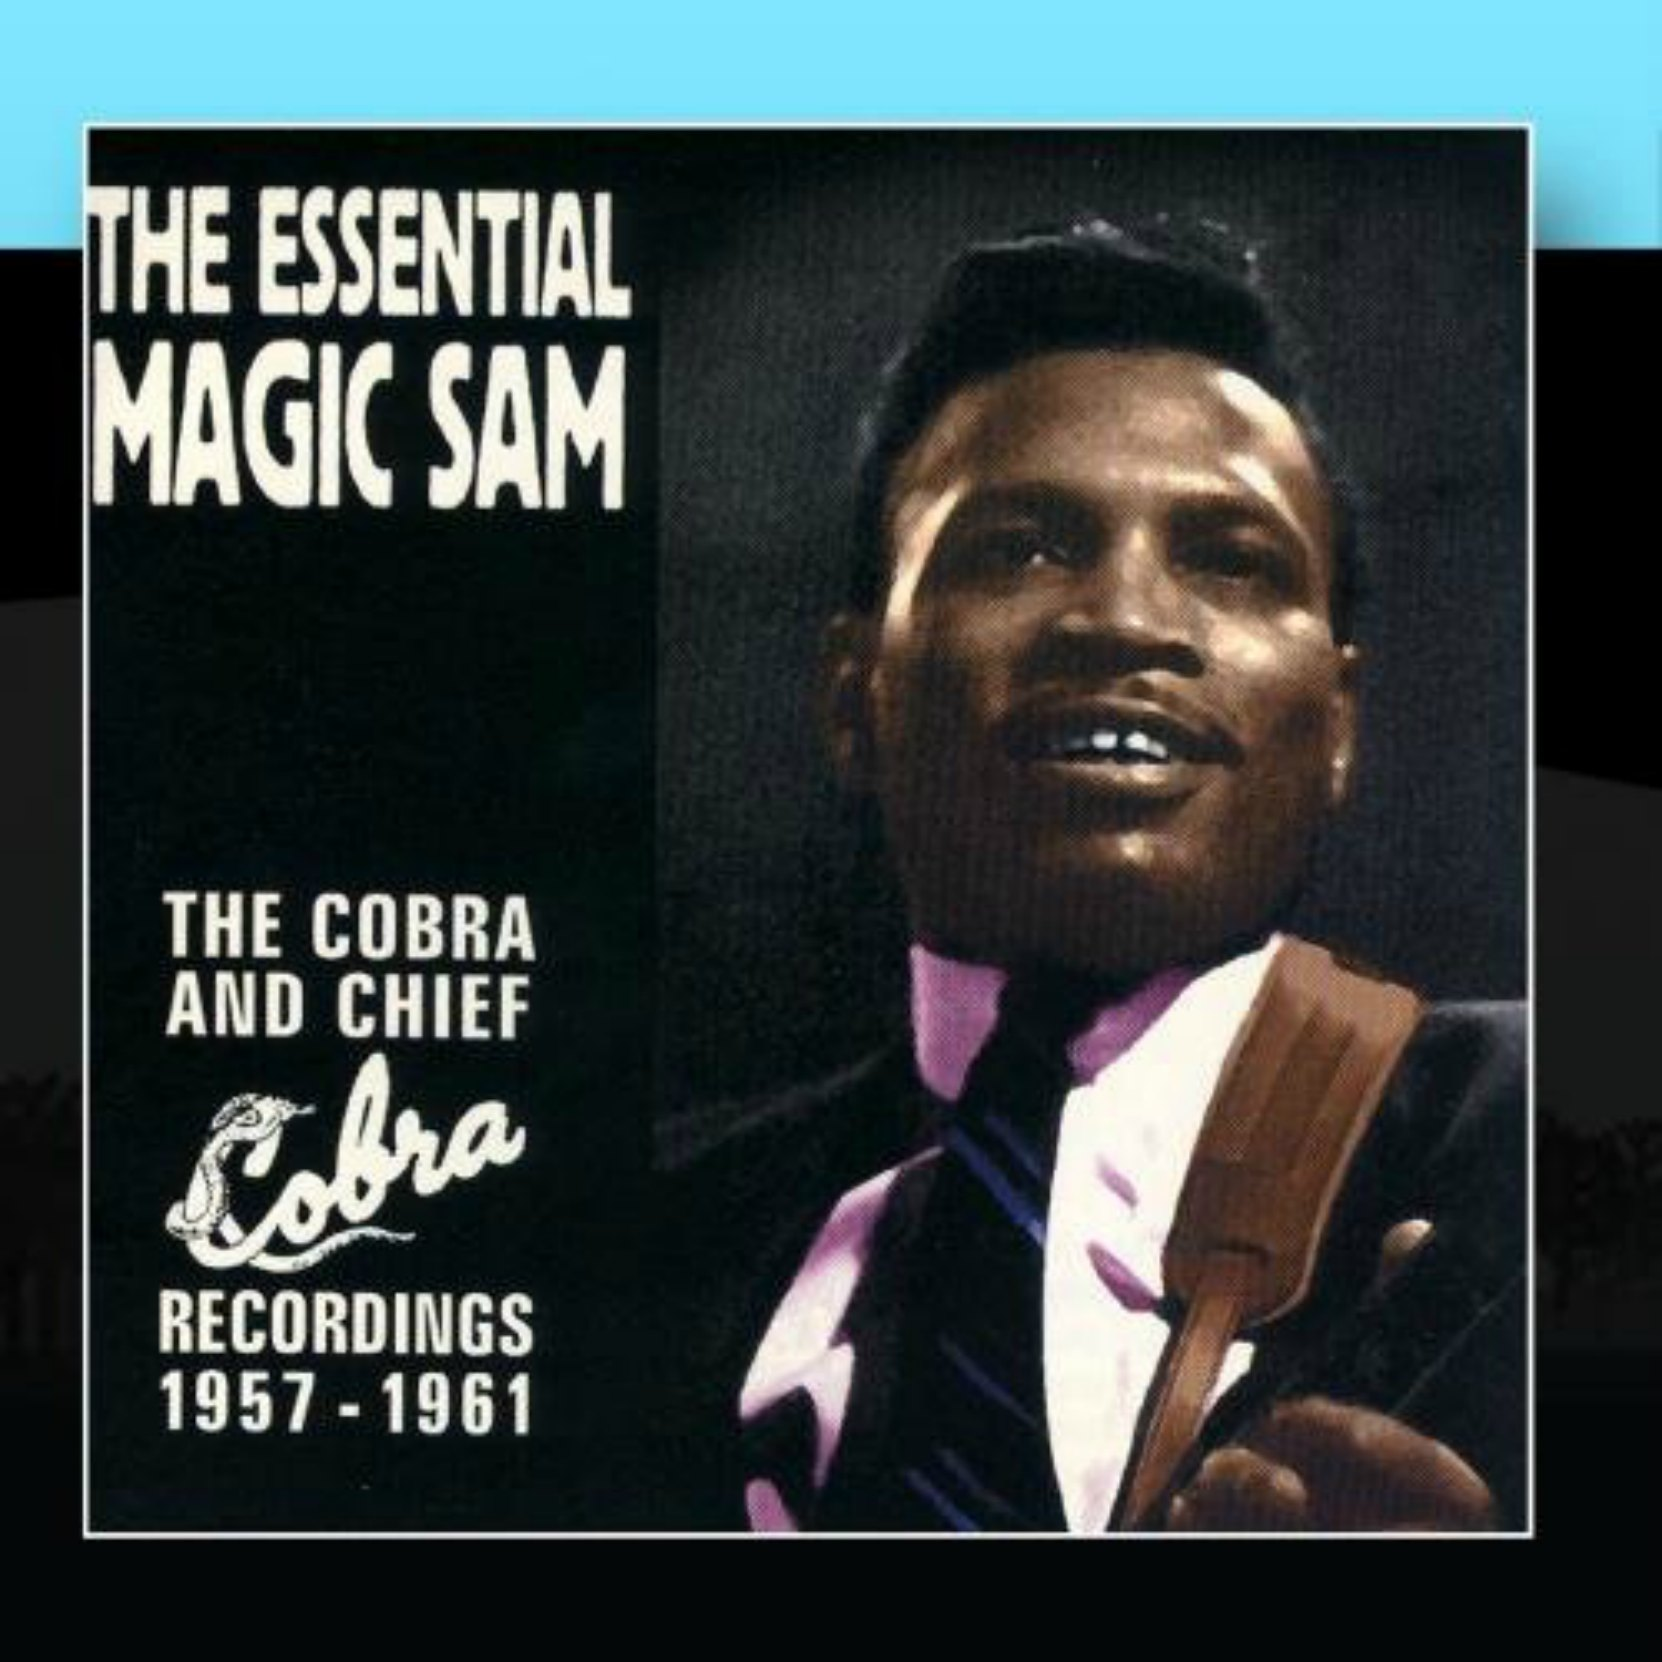 CD cover, The Essential Magic Sam - The Cobra and Chief Recordings 1957-1961, by Magic Sam